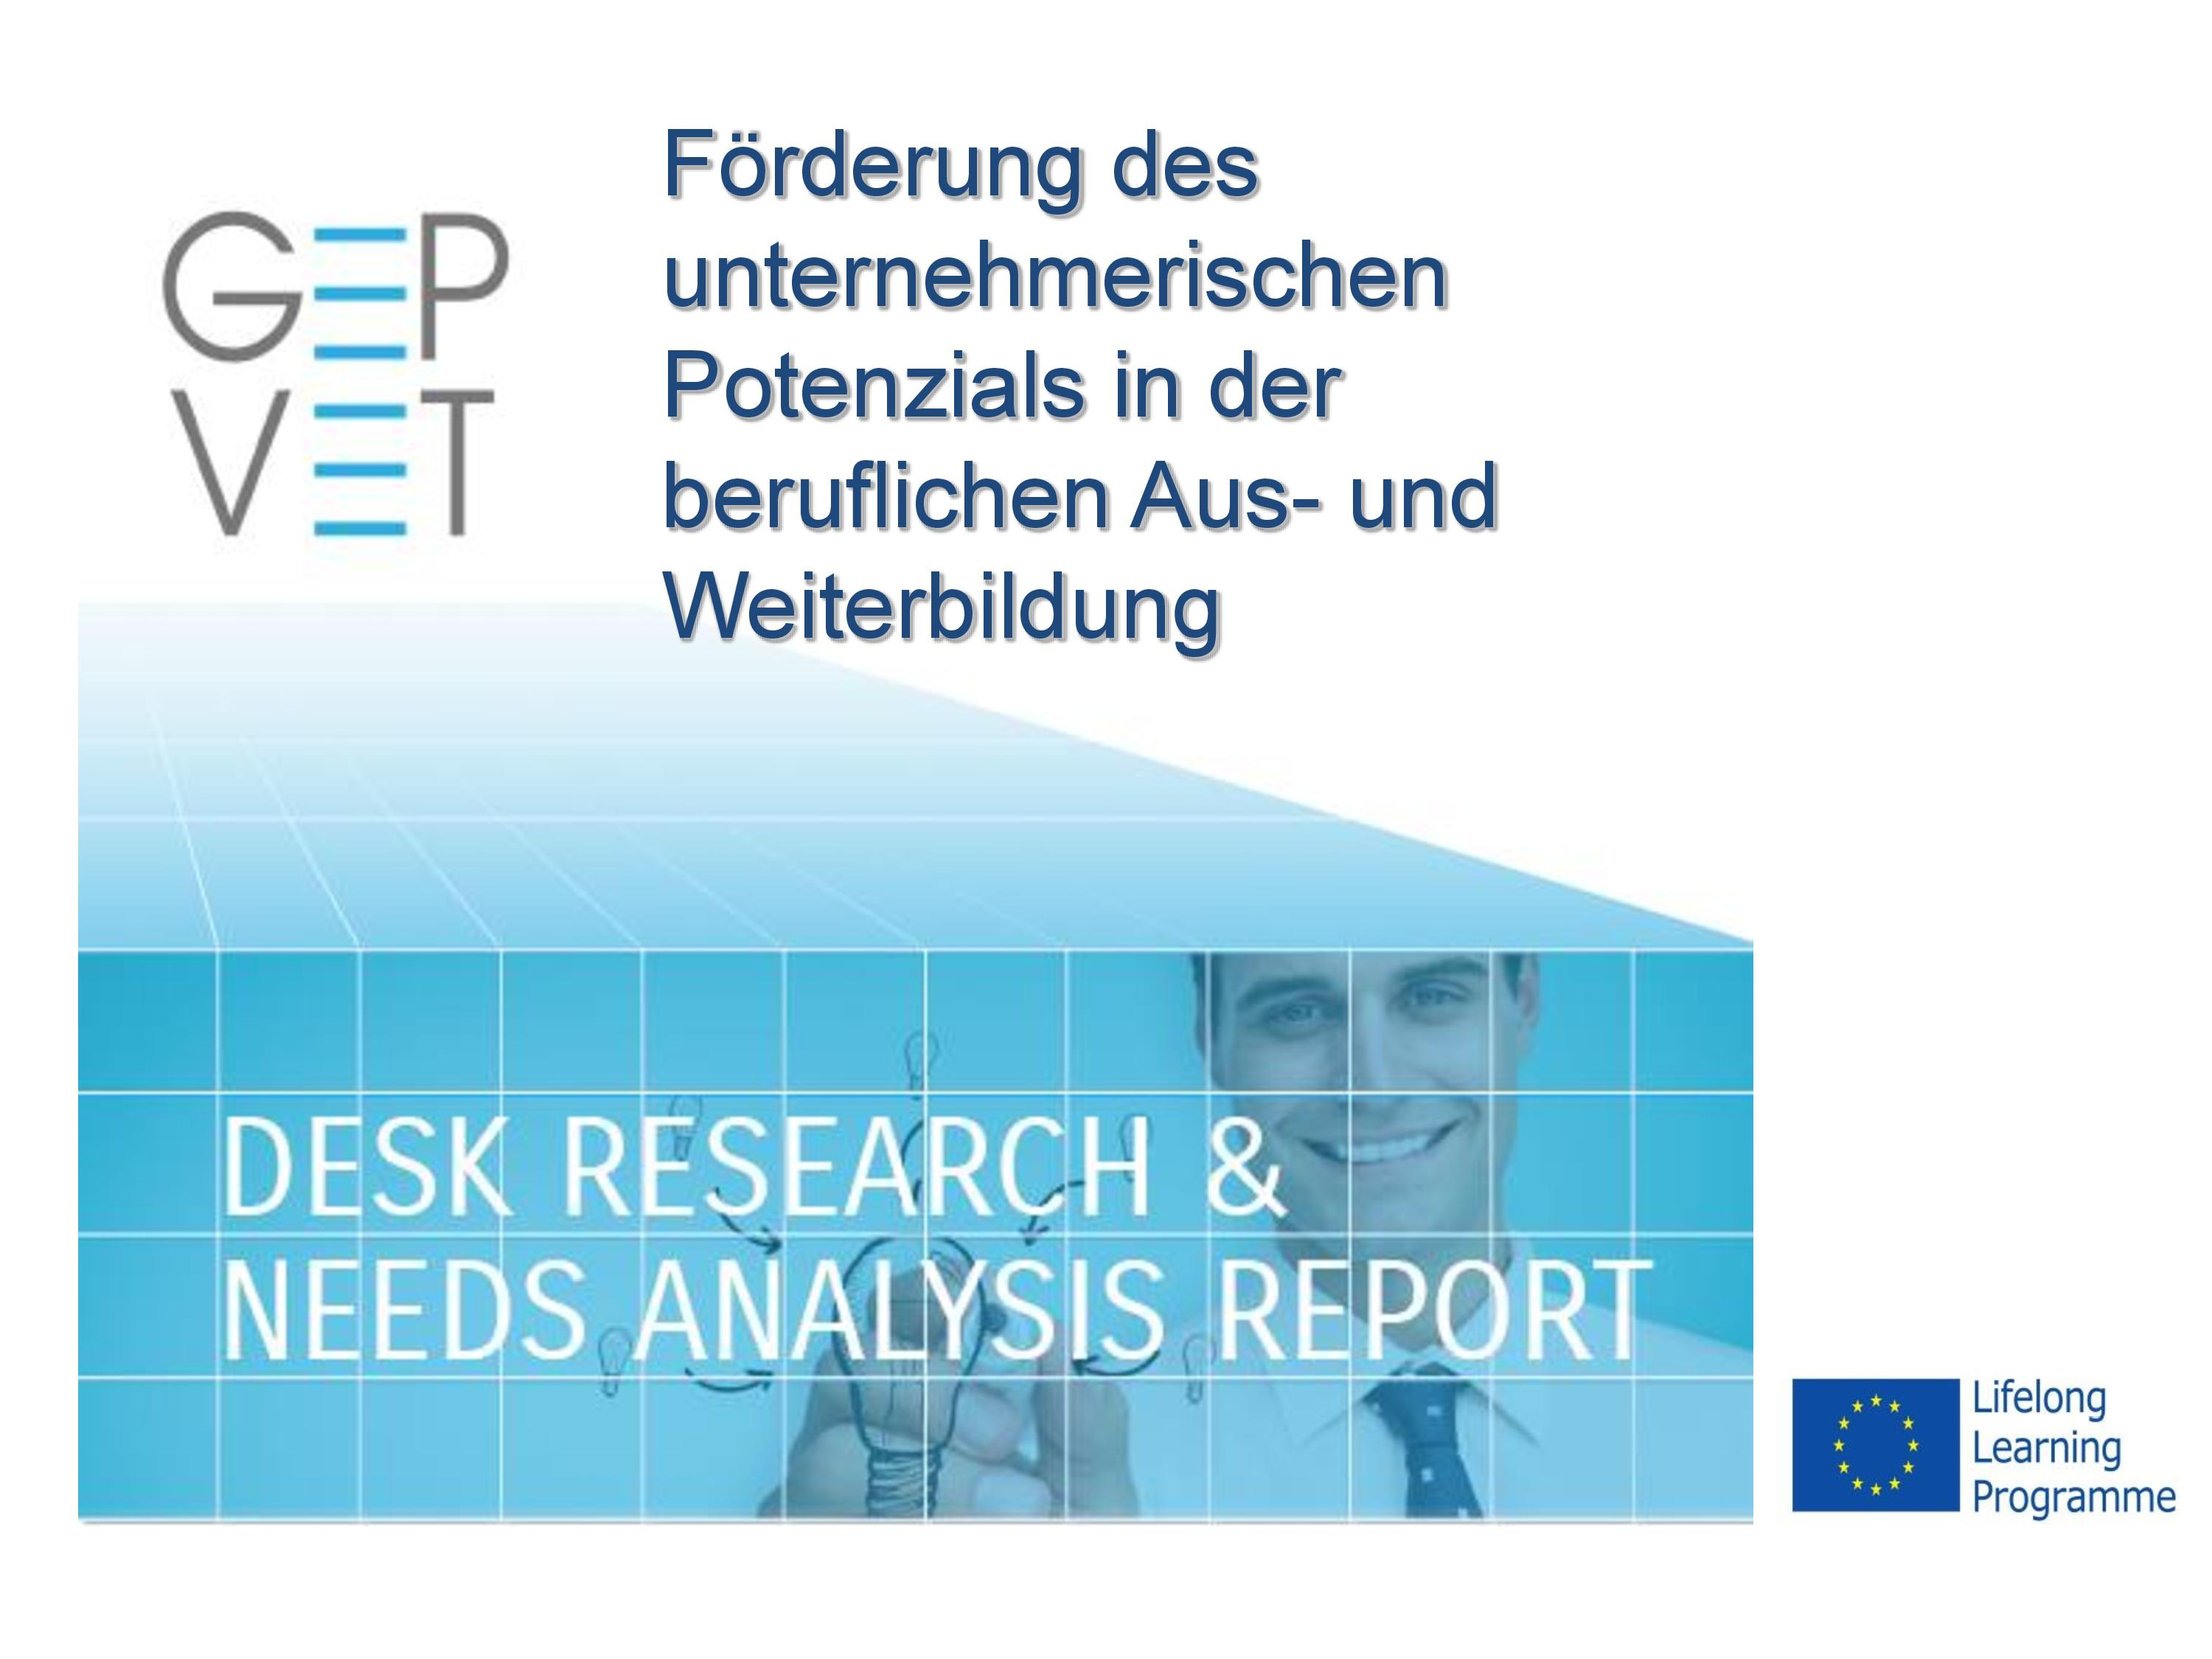 Desk Research & Needs Analysis Report